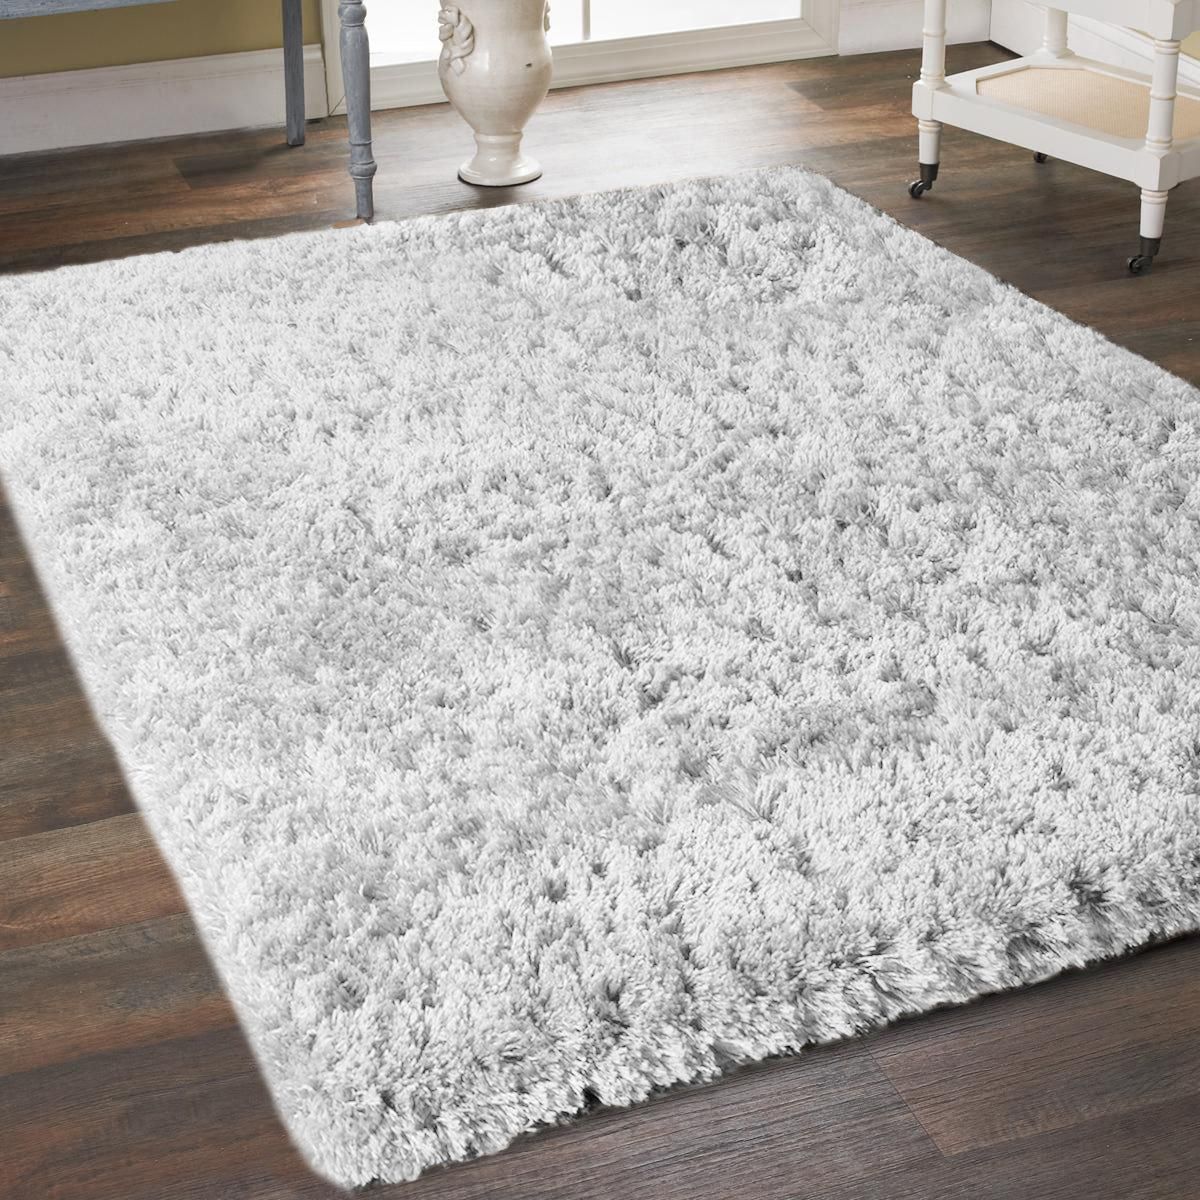 5' x 7' White Super Soft Thick Plush Pile Cozy Modern Shaggy Shag Microfiber Area Rug